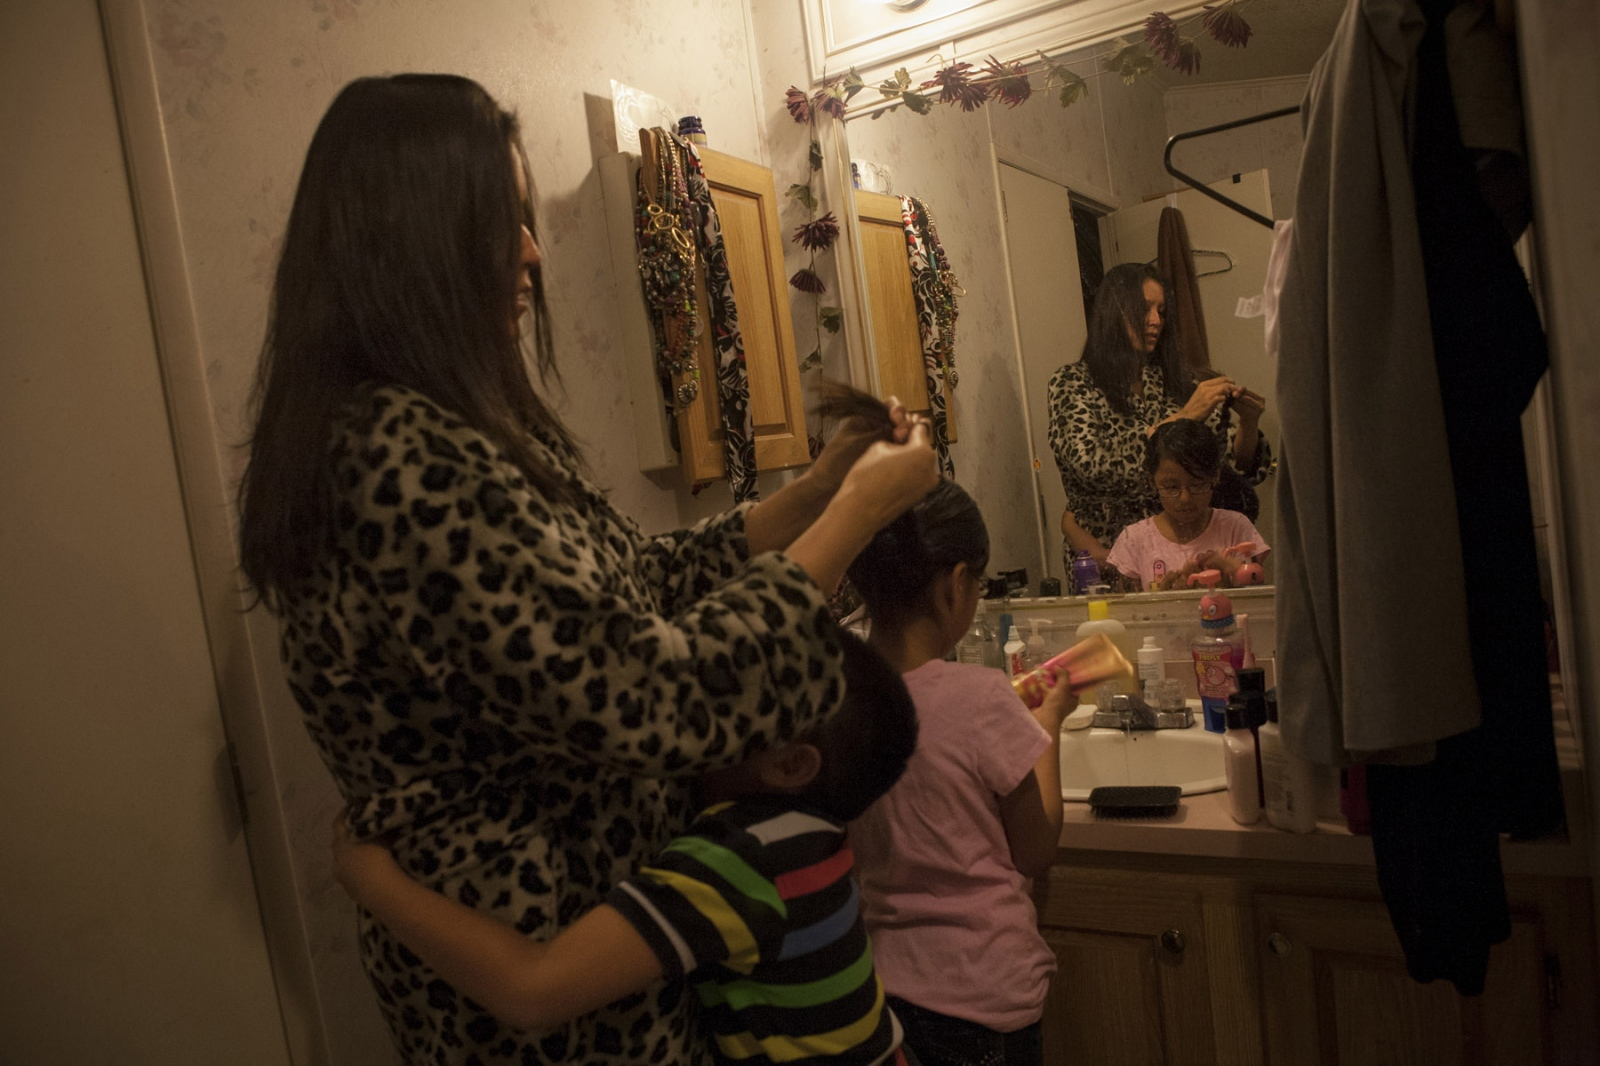 "Latonya ""Tasha"" Johnson, 35, wakes at 5.30am on weekdays to prepare herself and her children for the day, in Rock Springs, New Mexico. Pictured here is Ms. Johnson with her son Landon, 6, who was having a difficult morning and claimed he was sick, and her daughter Ashley, 8. Ms. Johnson says that the lack of time has prevented her from taking her younger children to counseling and that she knows they may not be able to verbally communicate how they feel about their father's death. Ms. Johnson's former husband Staff Sergeant Lonnie A. Watts, who died in October 2013, left Latonya to take care of their five children, the youngest of whom was born after he died. Mr. Watts was deployed to Afghanistan after the start of the US-led invasion with the 82nd Airborne, an airborne infantry division and was later deployed to Iraq in 2005. Ms. Johnson believes that her husband, whom she met after he returned from Afghanistan, was deeply affected by what he'd experienced in combat there, but refused to seek help or counseling to get diagnosed with PTSD because it was something ""[he] was not proud of."" Mr. Watts turned to alcoholism to deal with the trauma and according to Ms. Johnson, always needed an adrenaline rush. Ms. Johnson says she wishes her husband could have sought counseling so that he would be alive today to help her raise their five children."